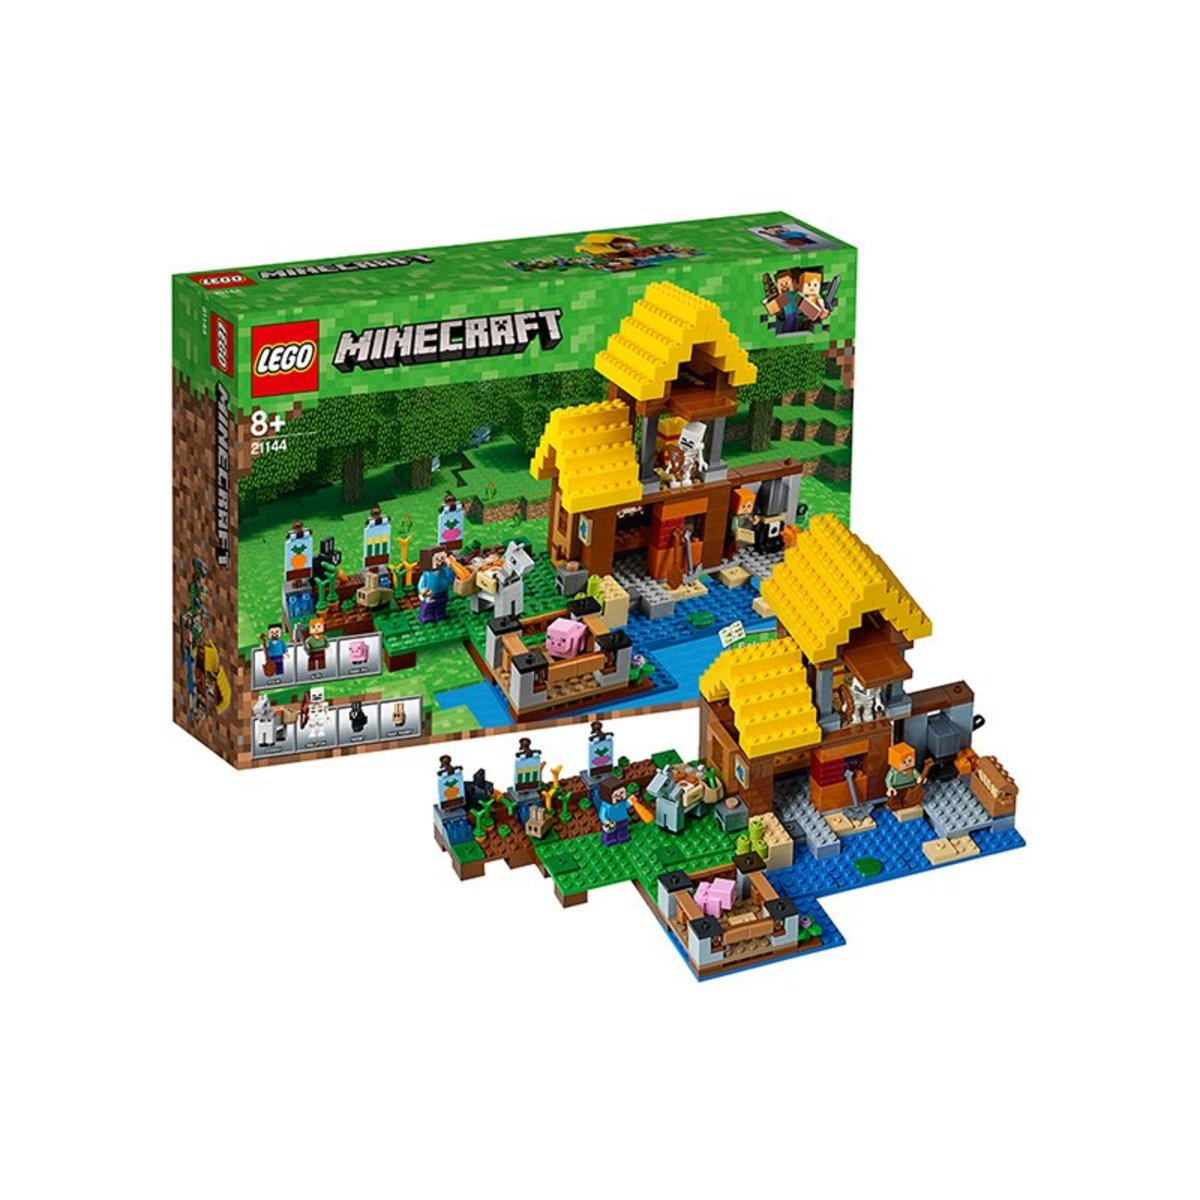 57778bdfd882 Lego | 21144 MINERCRAFT THE FARM COTTAGE | HKTVmall Online Shopping